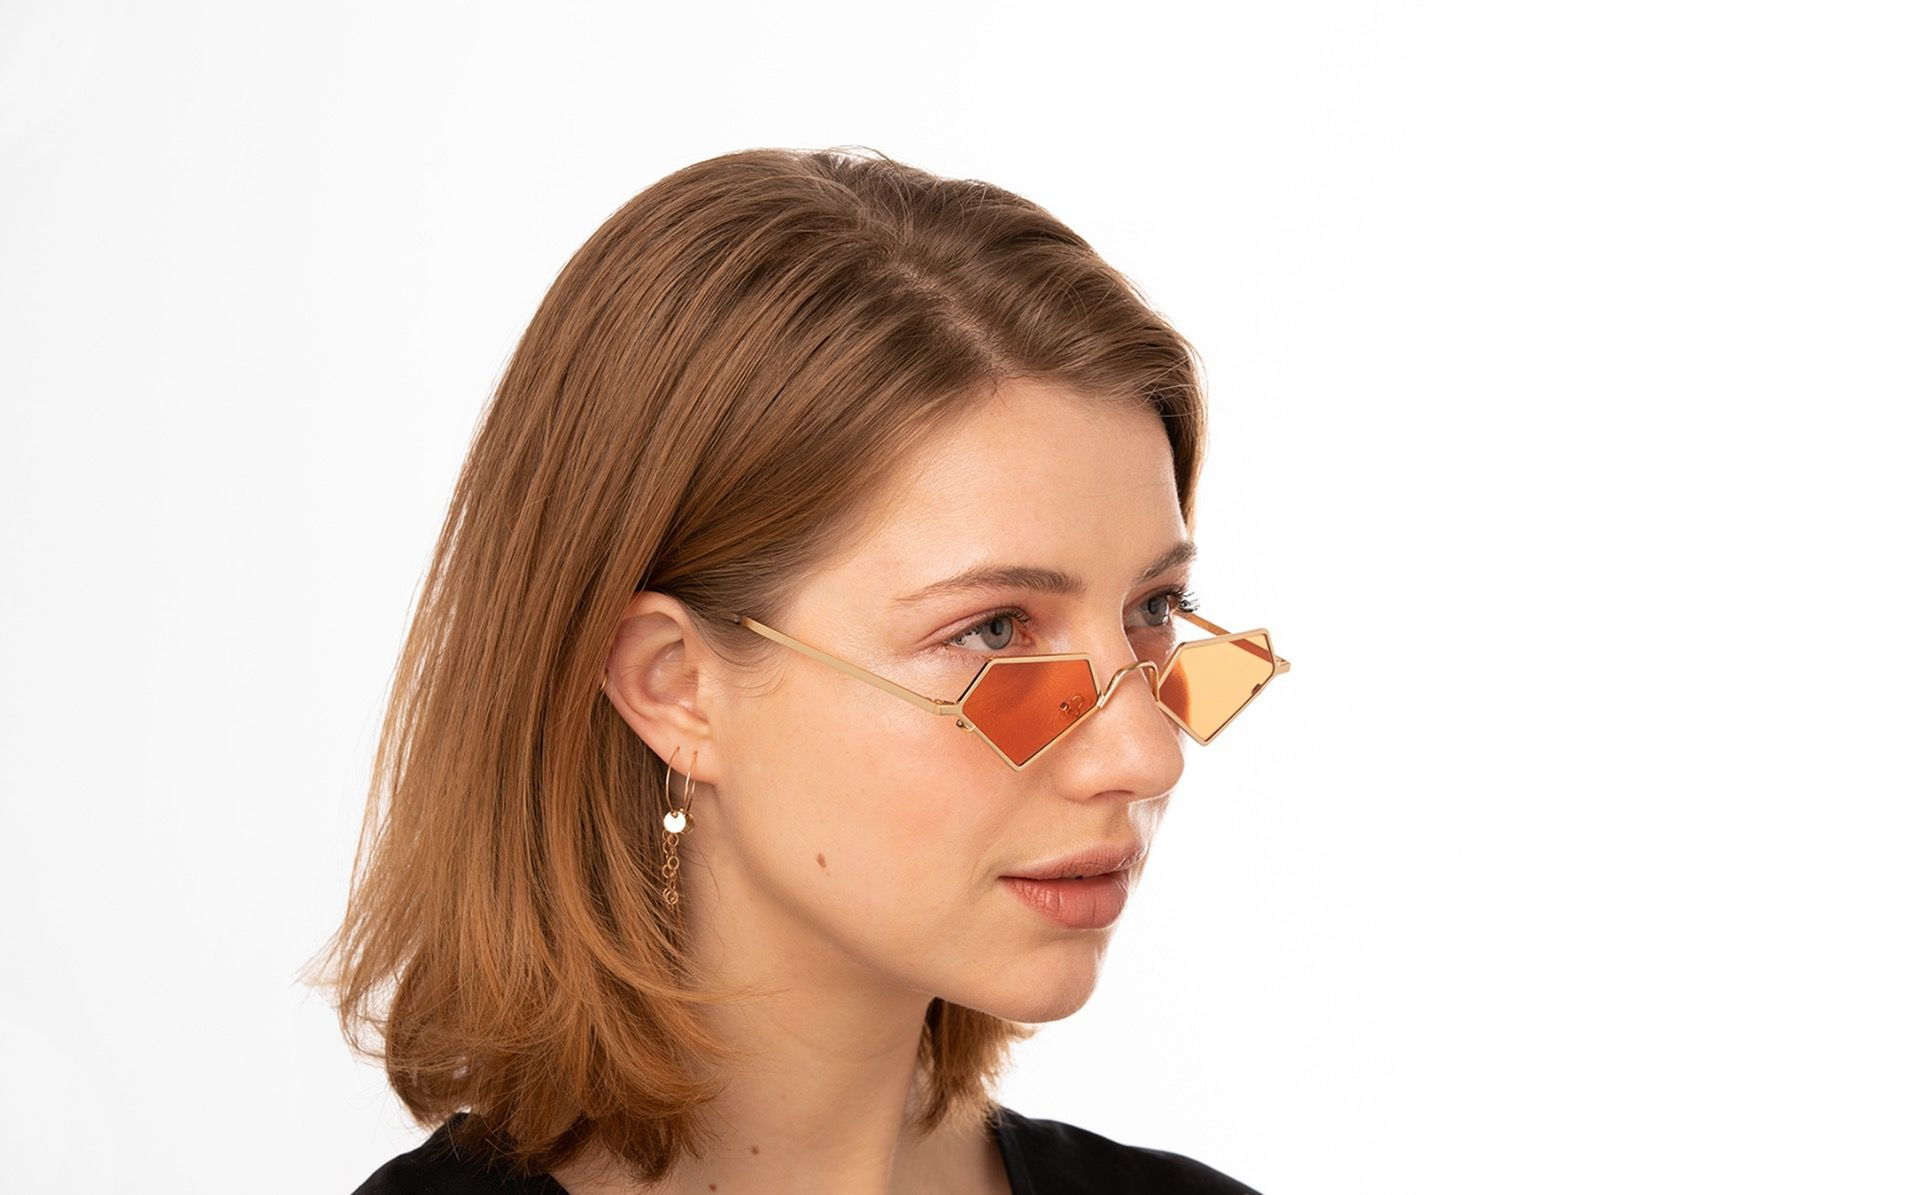 diamante polette glasses model view 01